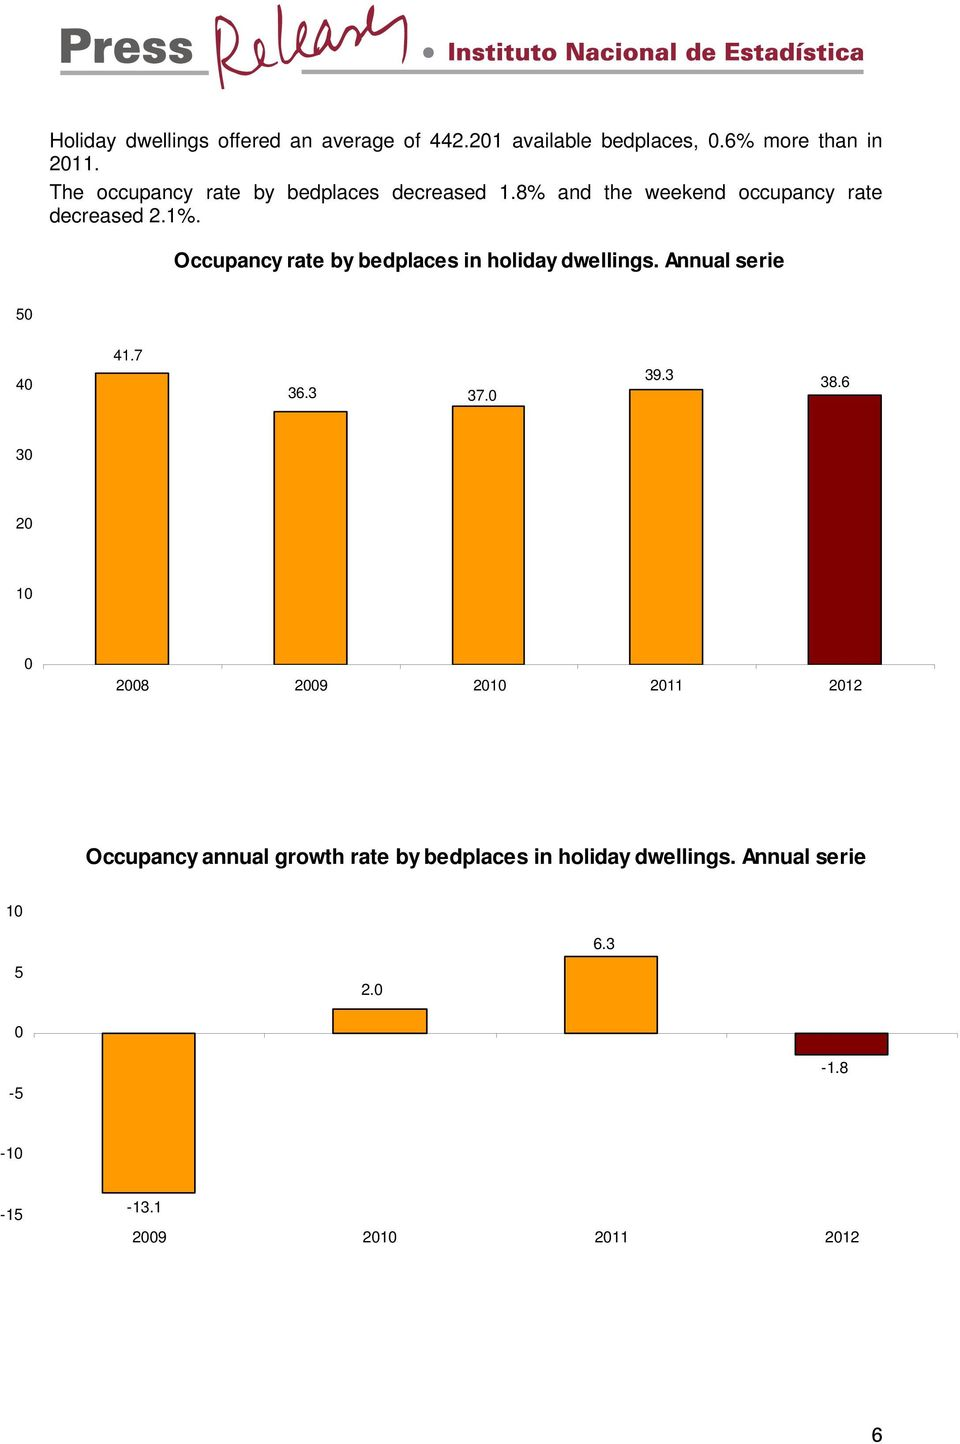 Occupancy rate by bedplaces in holiday dwellings. Annual serie 5 4 41.7 36.3 37. 39.3 38.